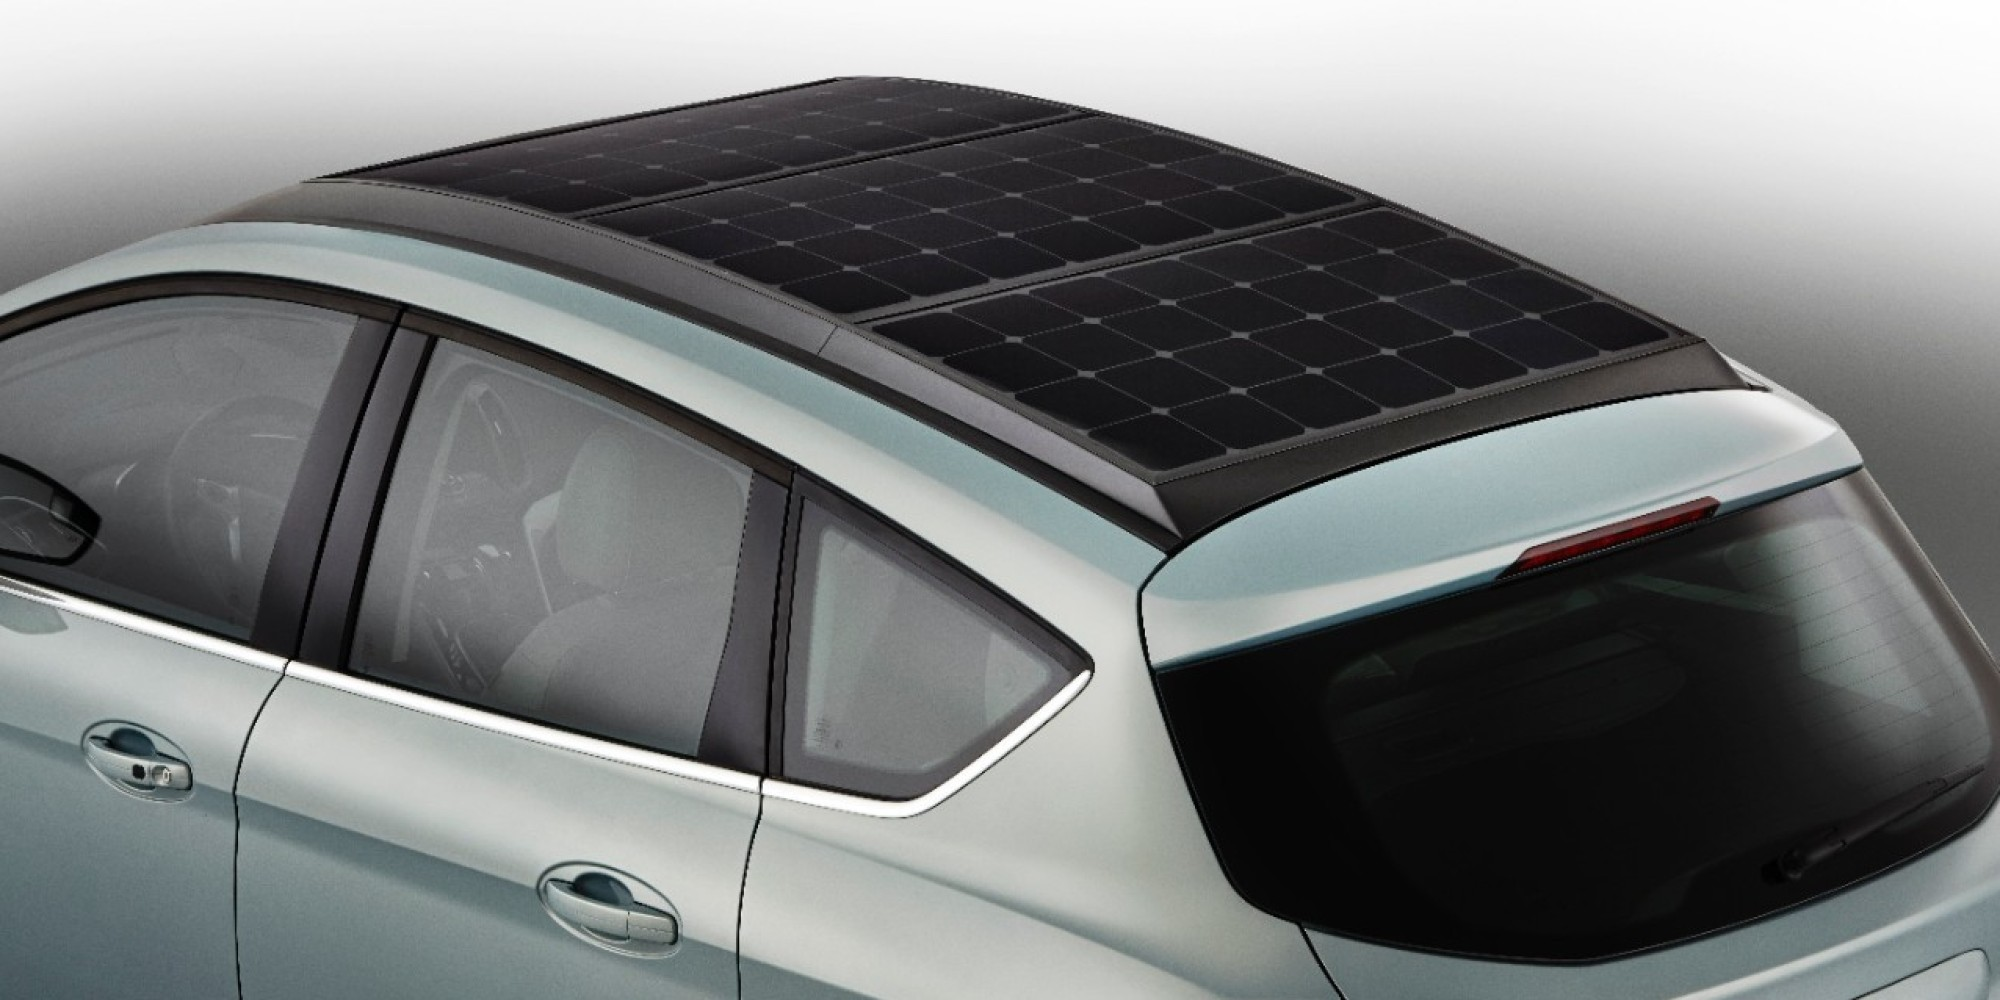 To Apple, the solar car is just another device, albeit a more expensive one to hover around the human..